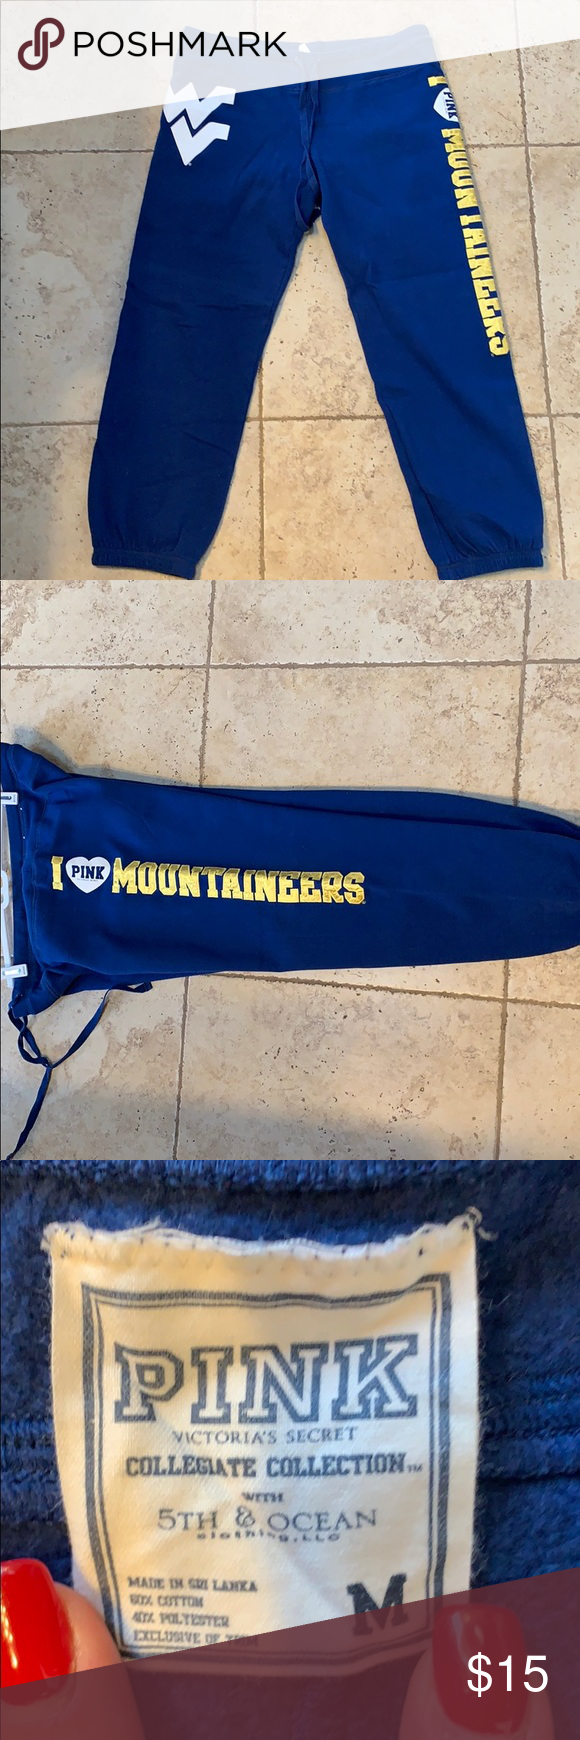 VS Pink WVU Mountaineers sweatpants Size medium navy and gold WVU VS PINK sweatpants. Great condition PINK Victoria's Secret Pants Track Pants & Joggers #wvumountaineers